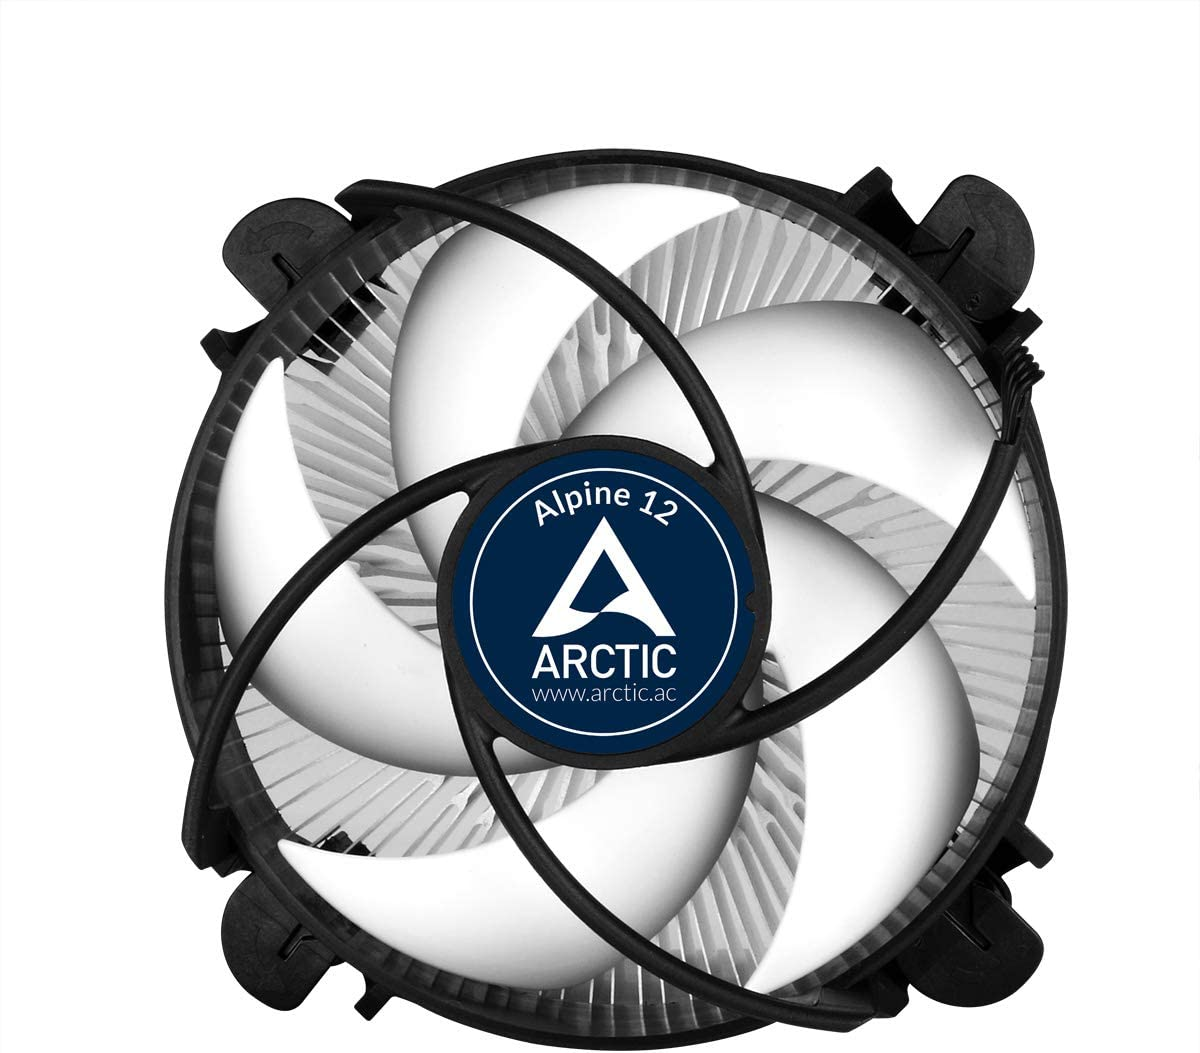 92mm PWM Fan at 23dBA Intel Supports Multiple Sockets ARCTIC Alpine 11 Plus CPU Cooler